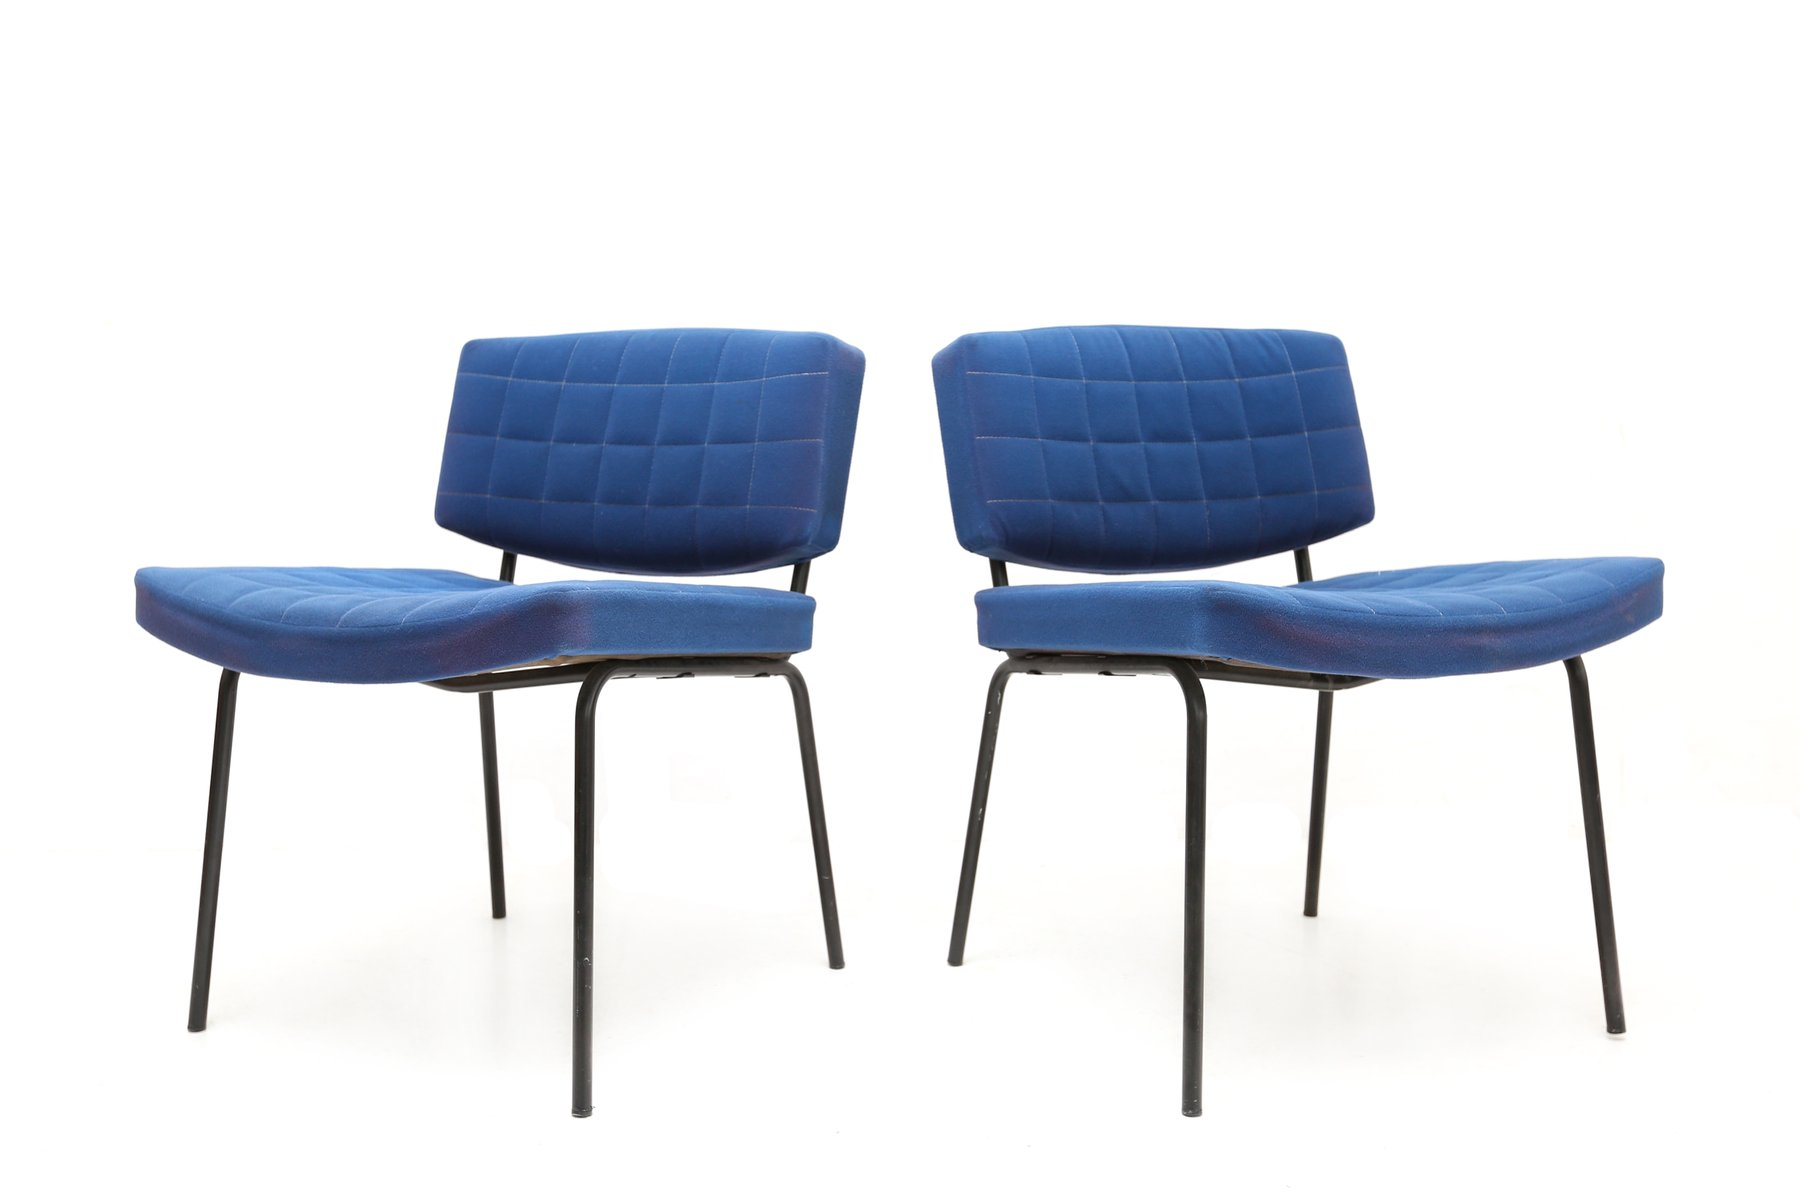 royal blue chairs patio set with swivel by pierre guariche for meurop 1950s